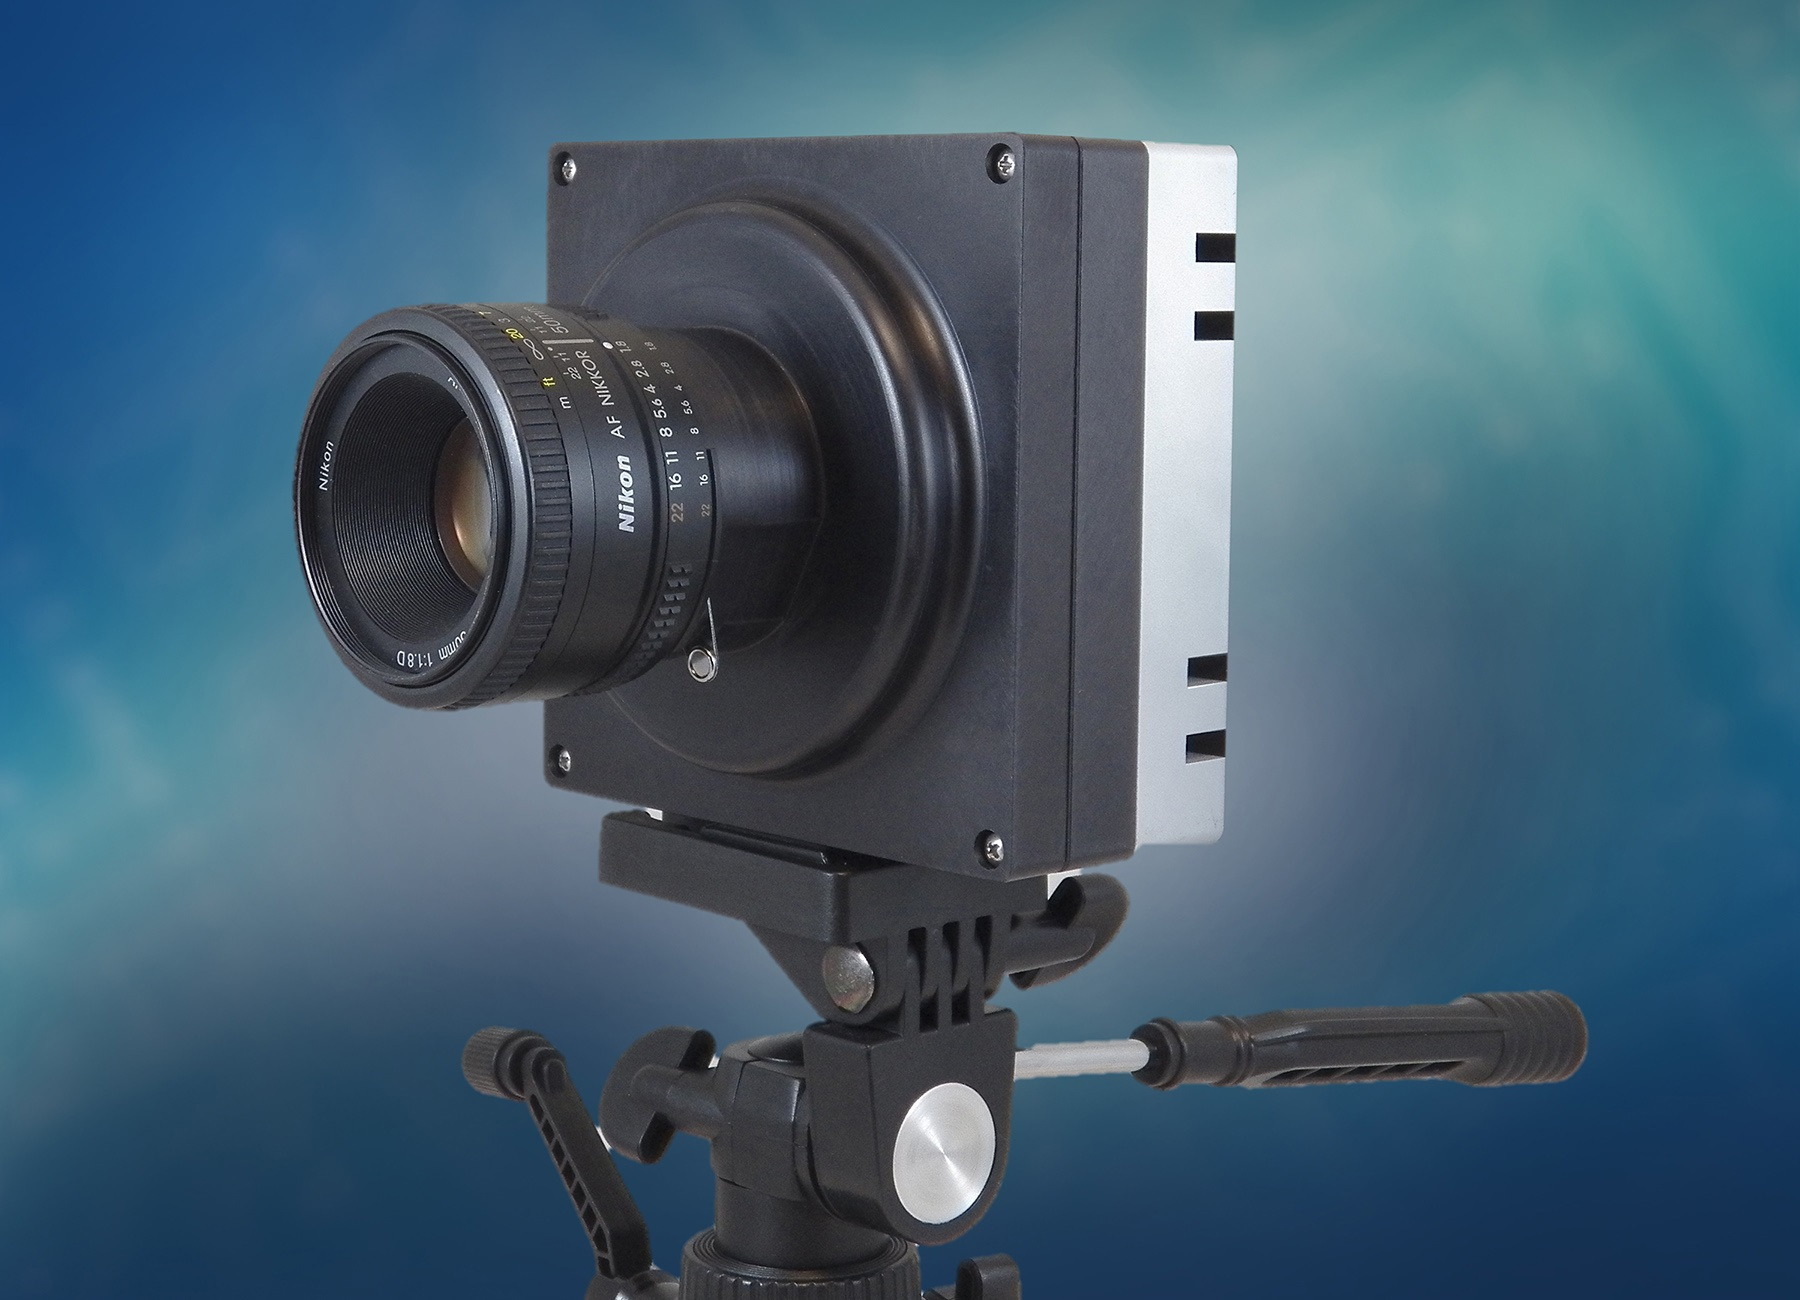 Critical Link Introduces Mitycam C50000 For Cmos Sensor Evaluation 8 Megapixel Imaging And Embedded Applications